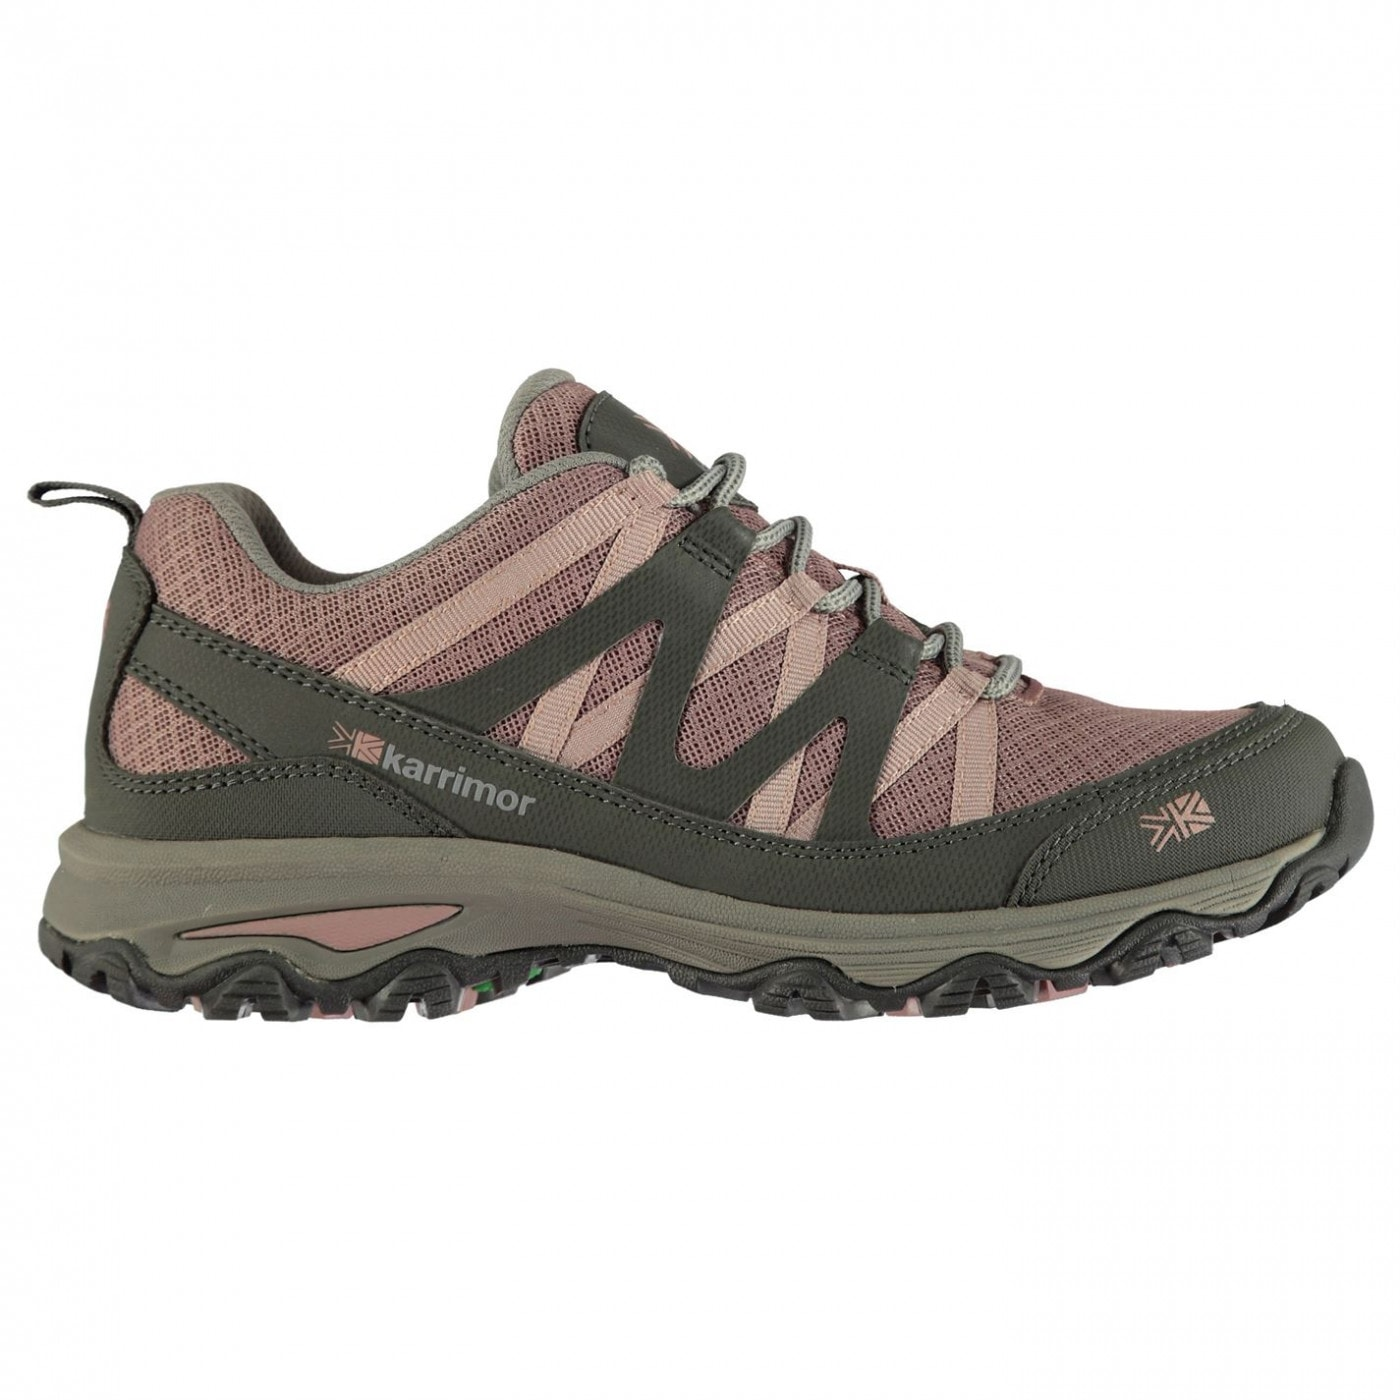 Karrimor Surge Ladies Walking Shoes